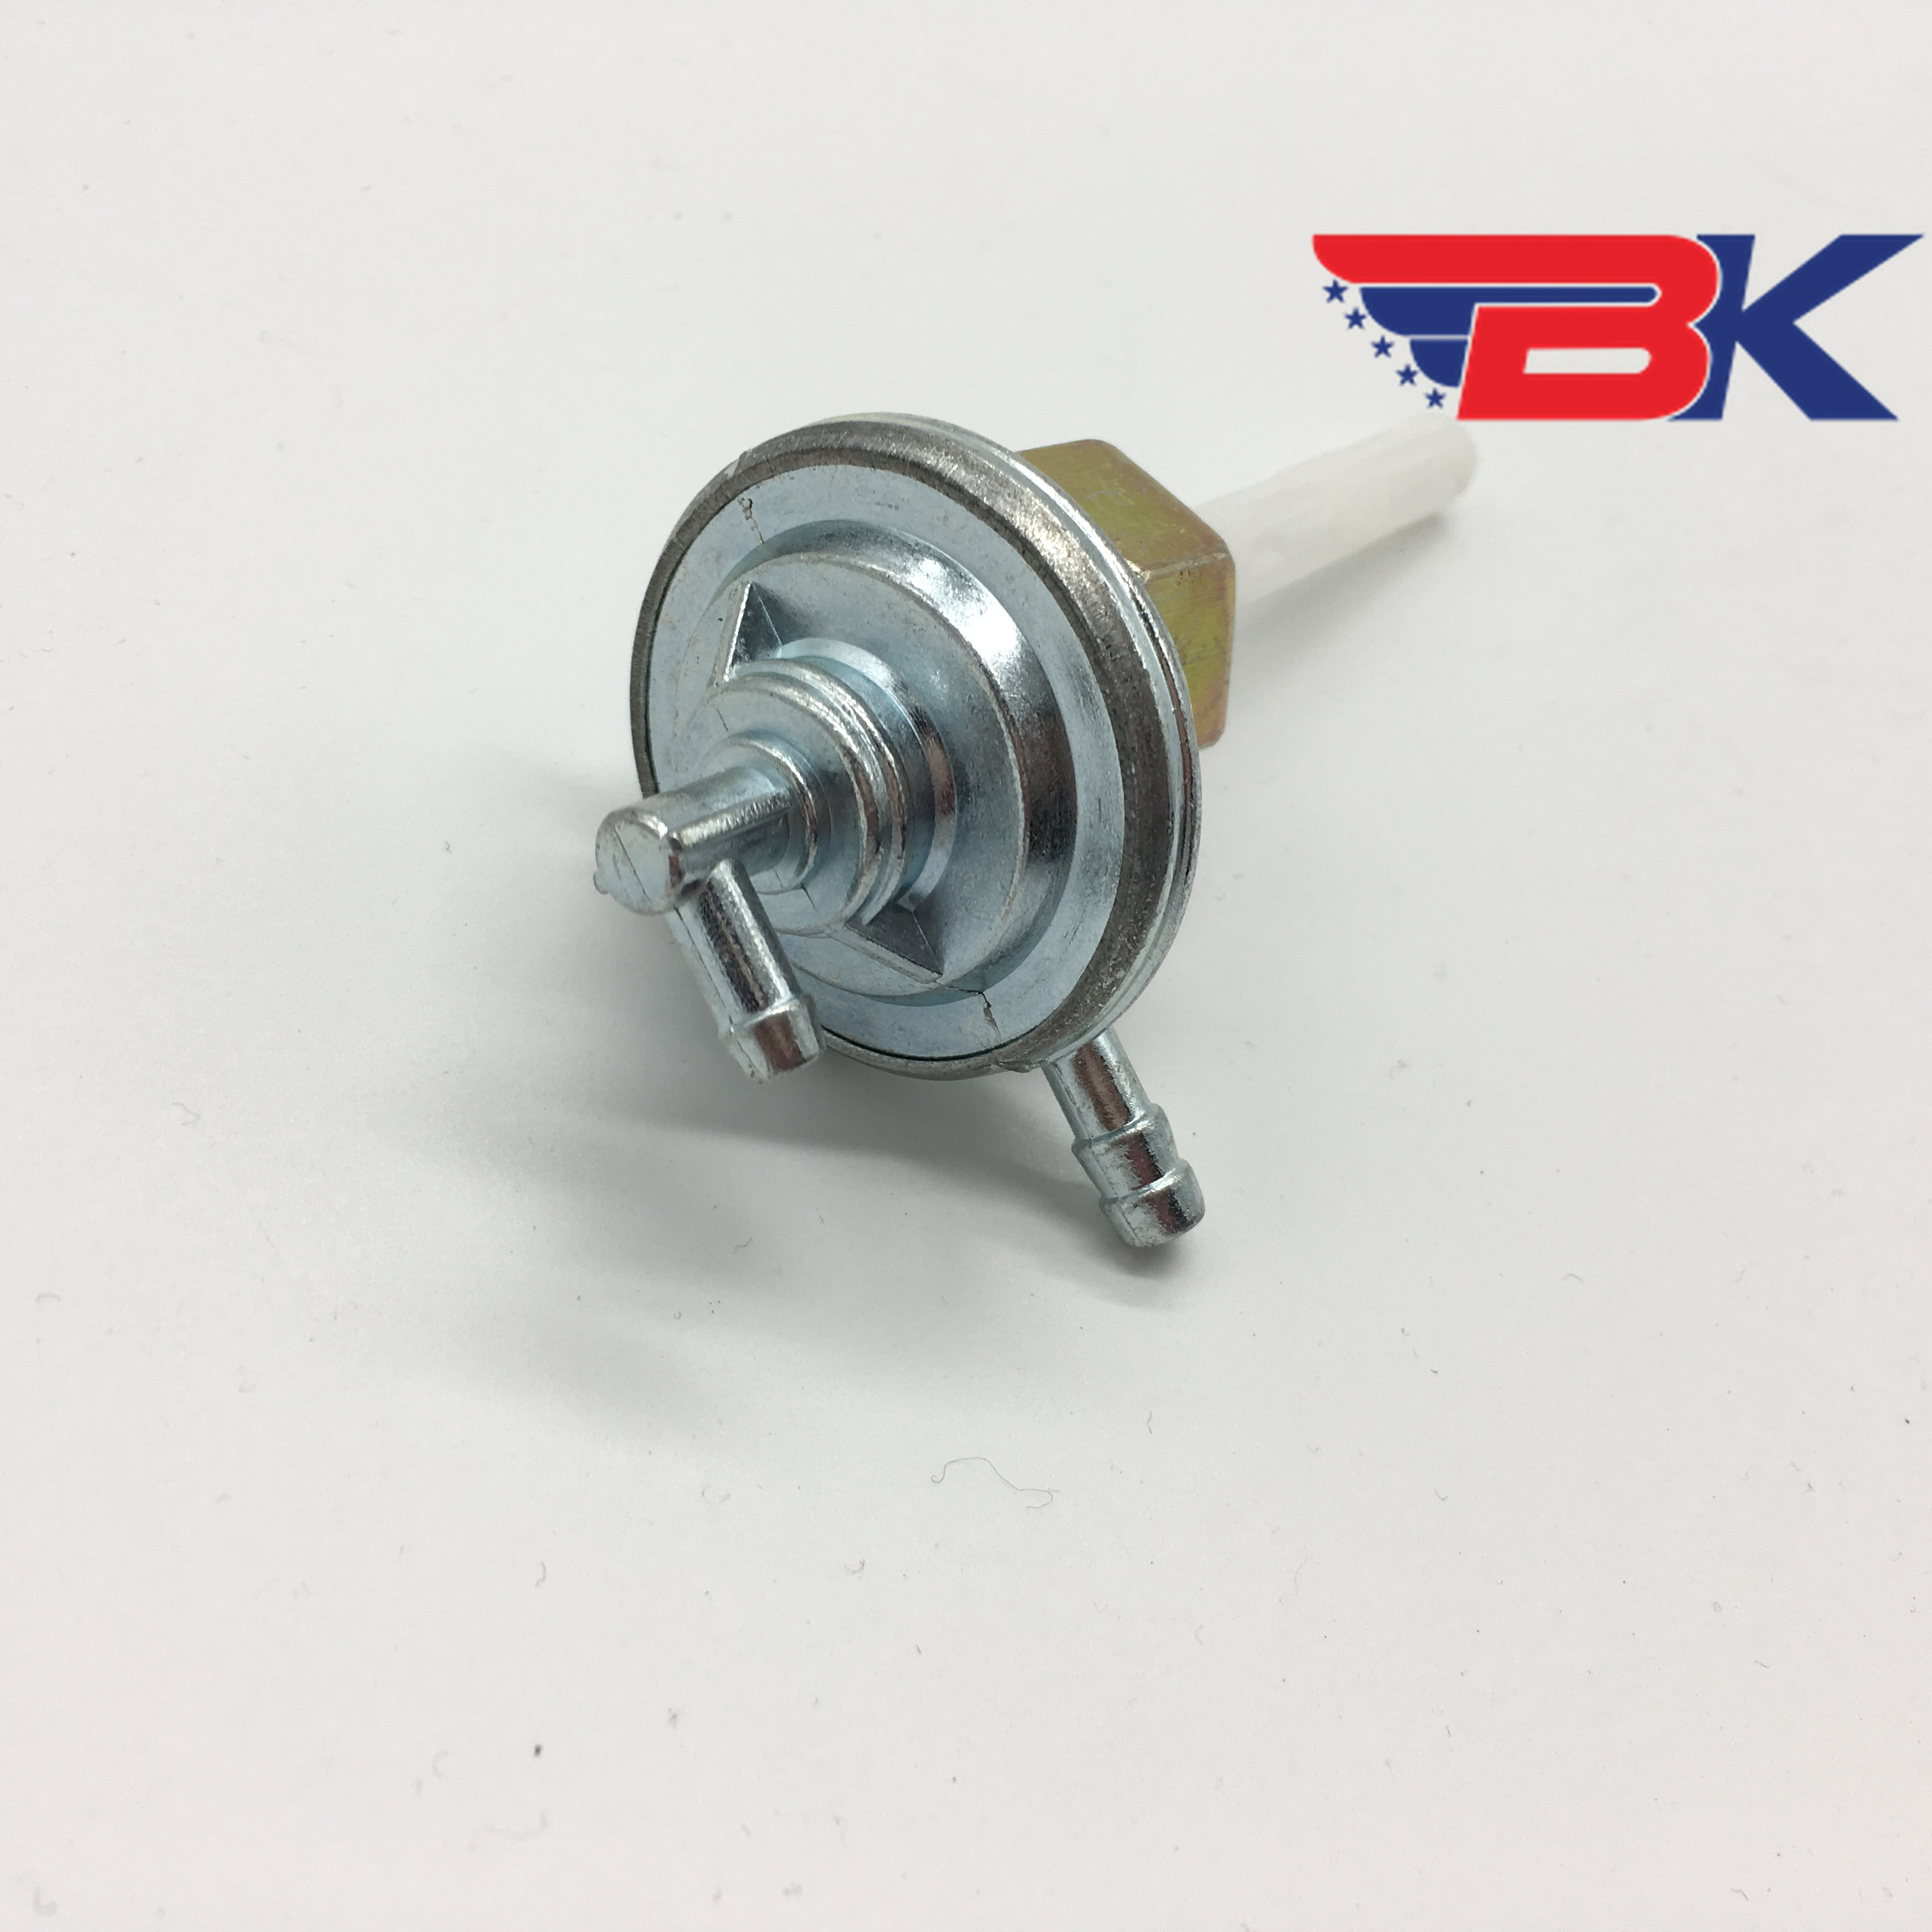 1981 1982 FUEL PETCOCK ASSEMBLY FOR HONDA EXPRESS 50 SR NX50 SCOOTER MOPED